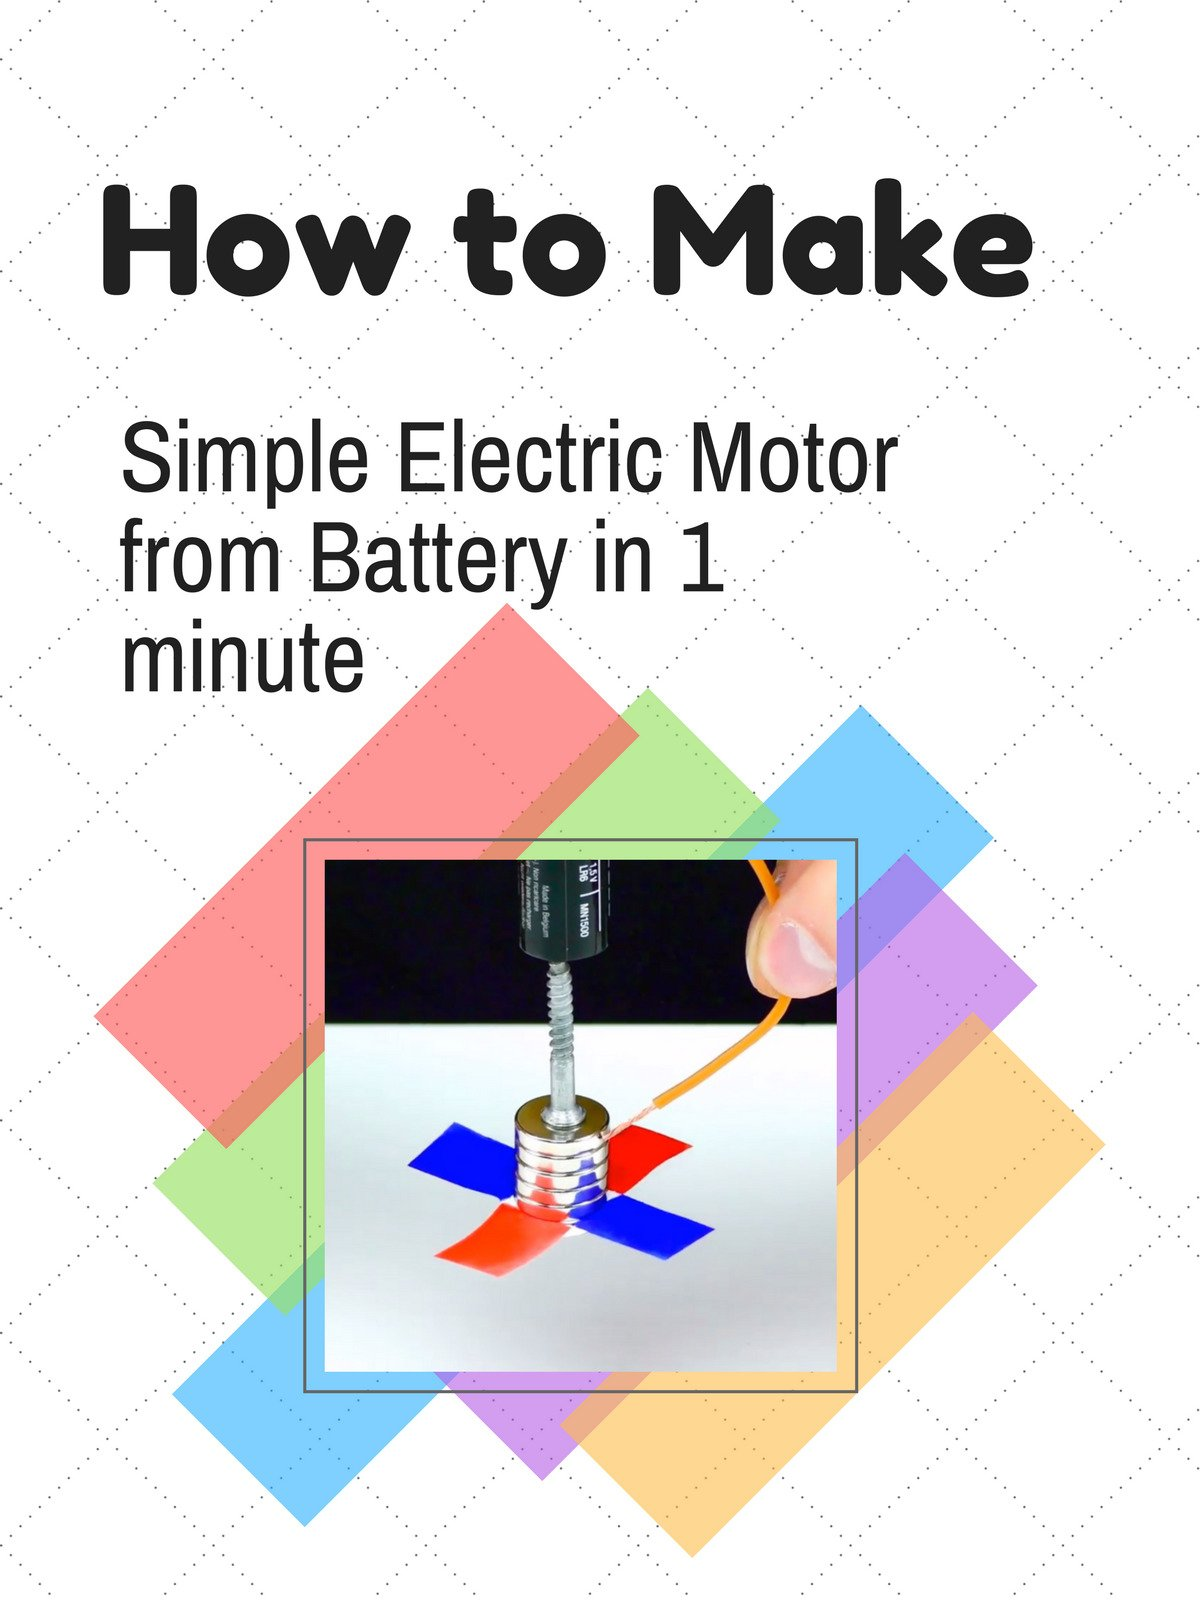 amazon com: watch how to make simple electric motor from battery in 1  minute | prime video